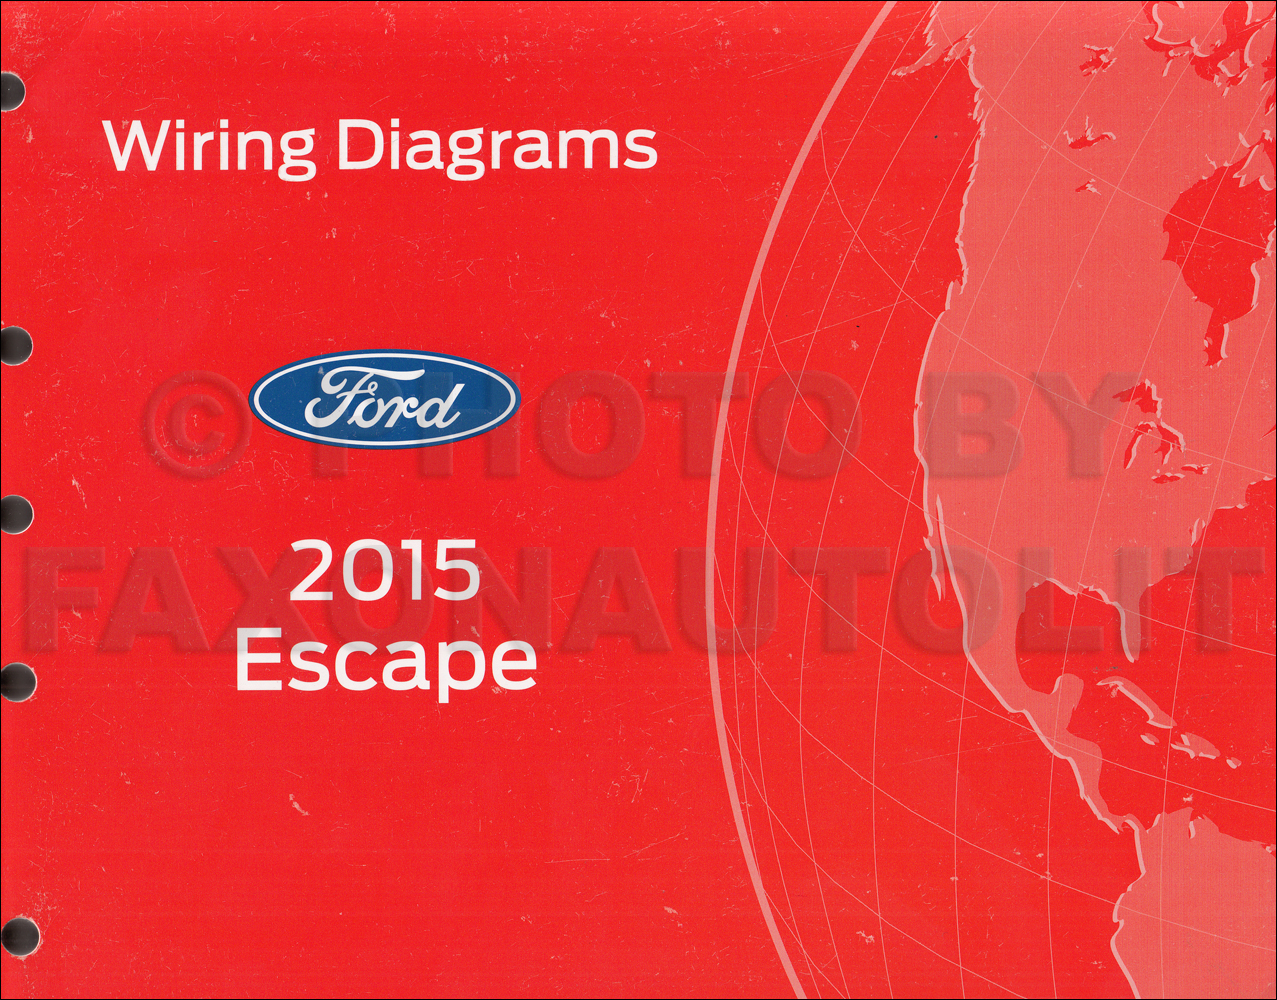 2015 Ford Escape Wiring Diagram Manual Original